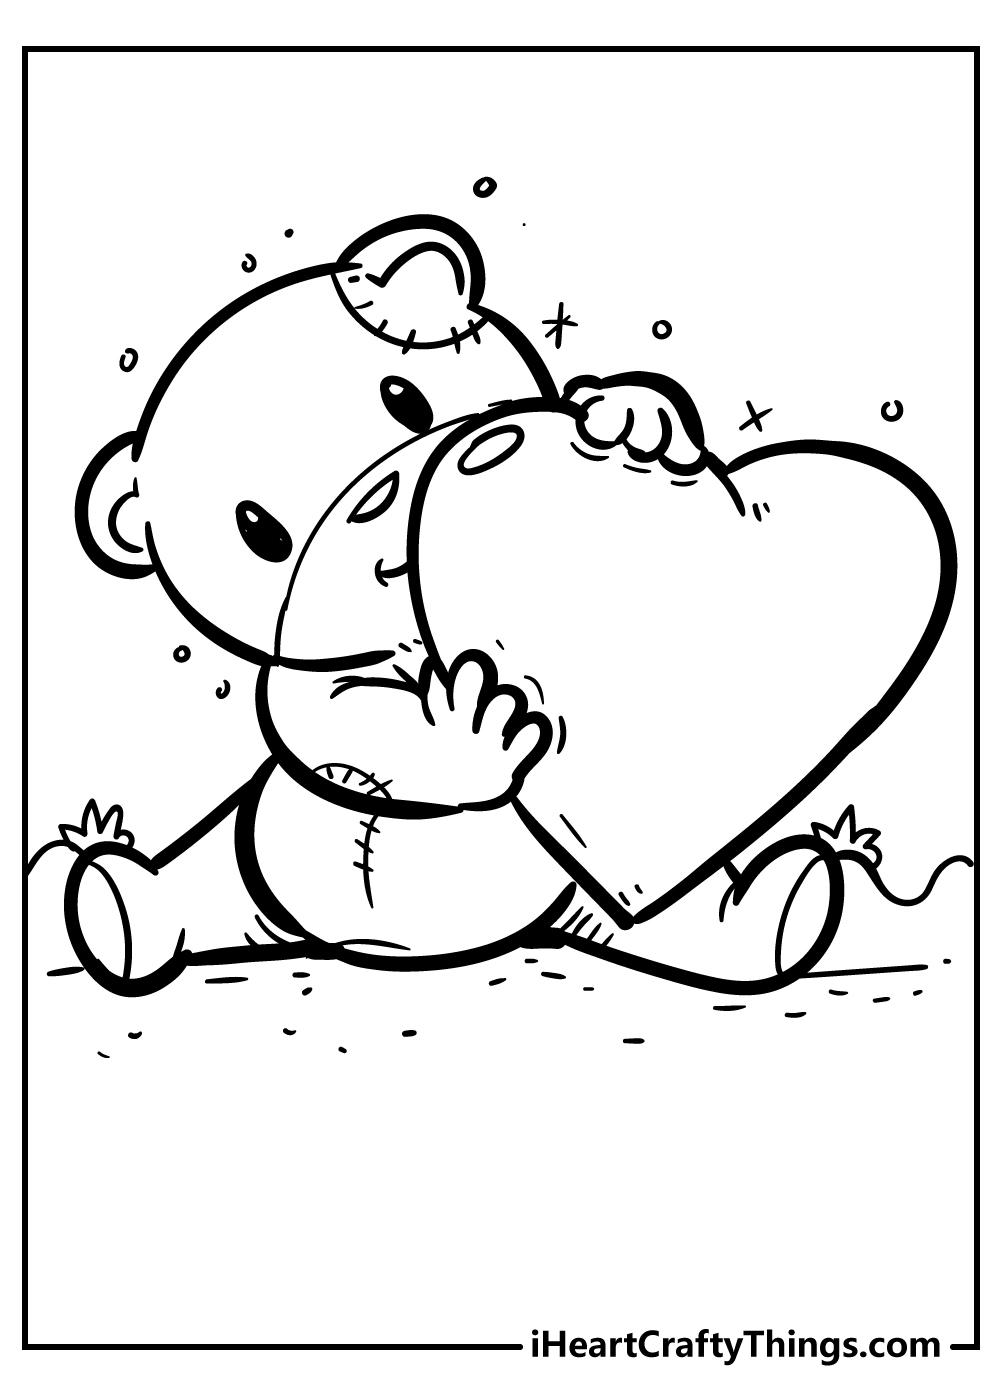 cute heart coloring page